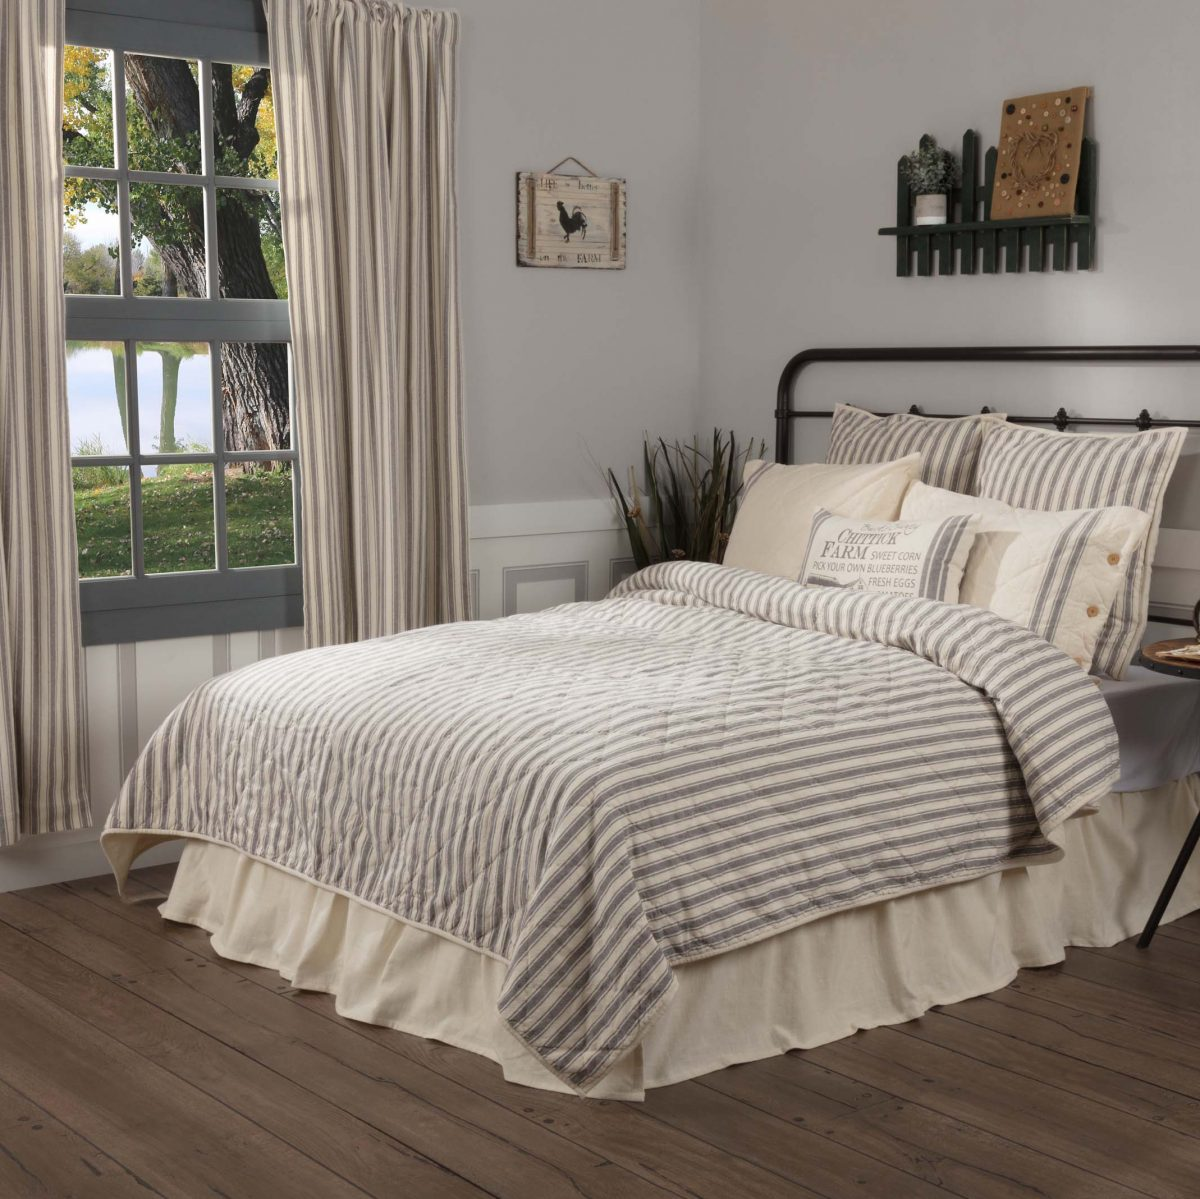 Market Place Gray Ticking Stripe Quilt Twin Piper Classics